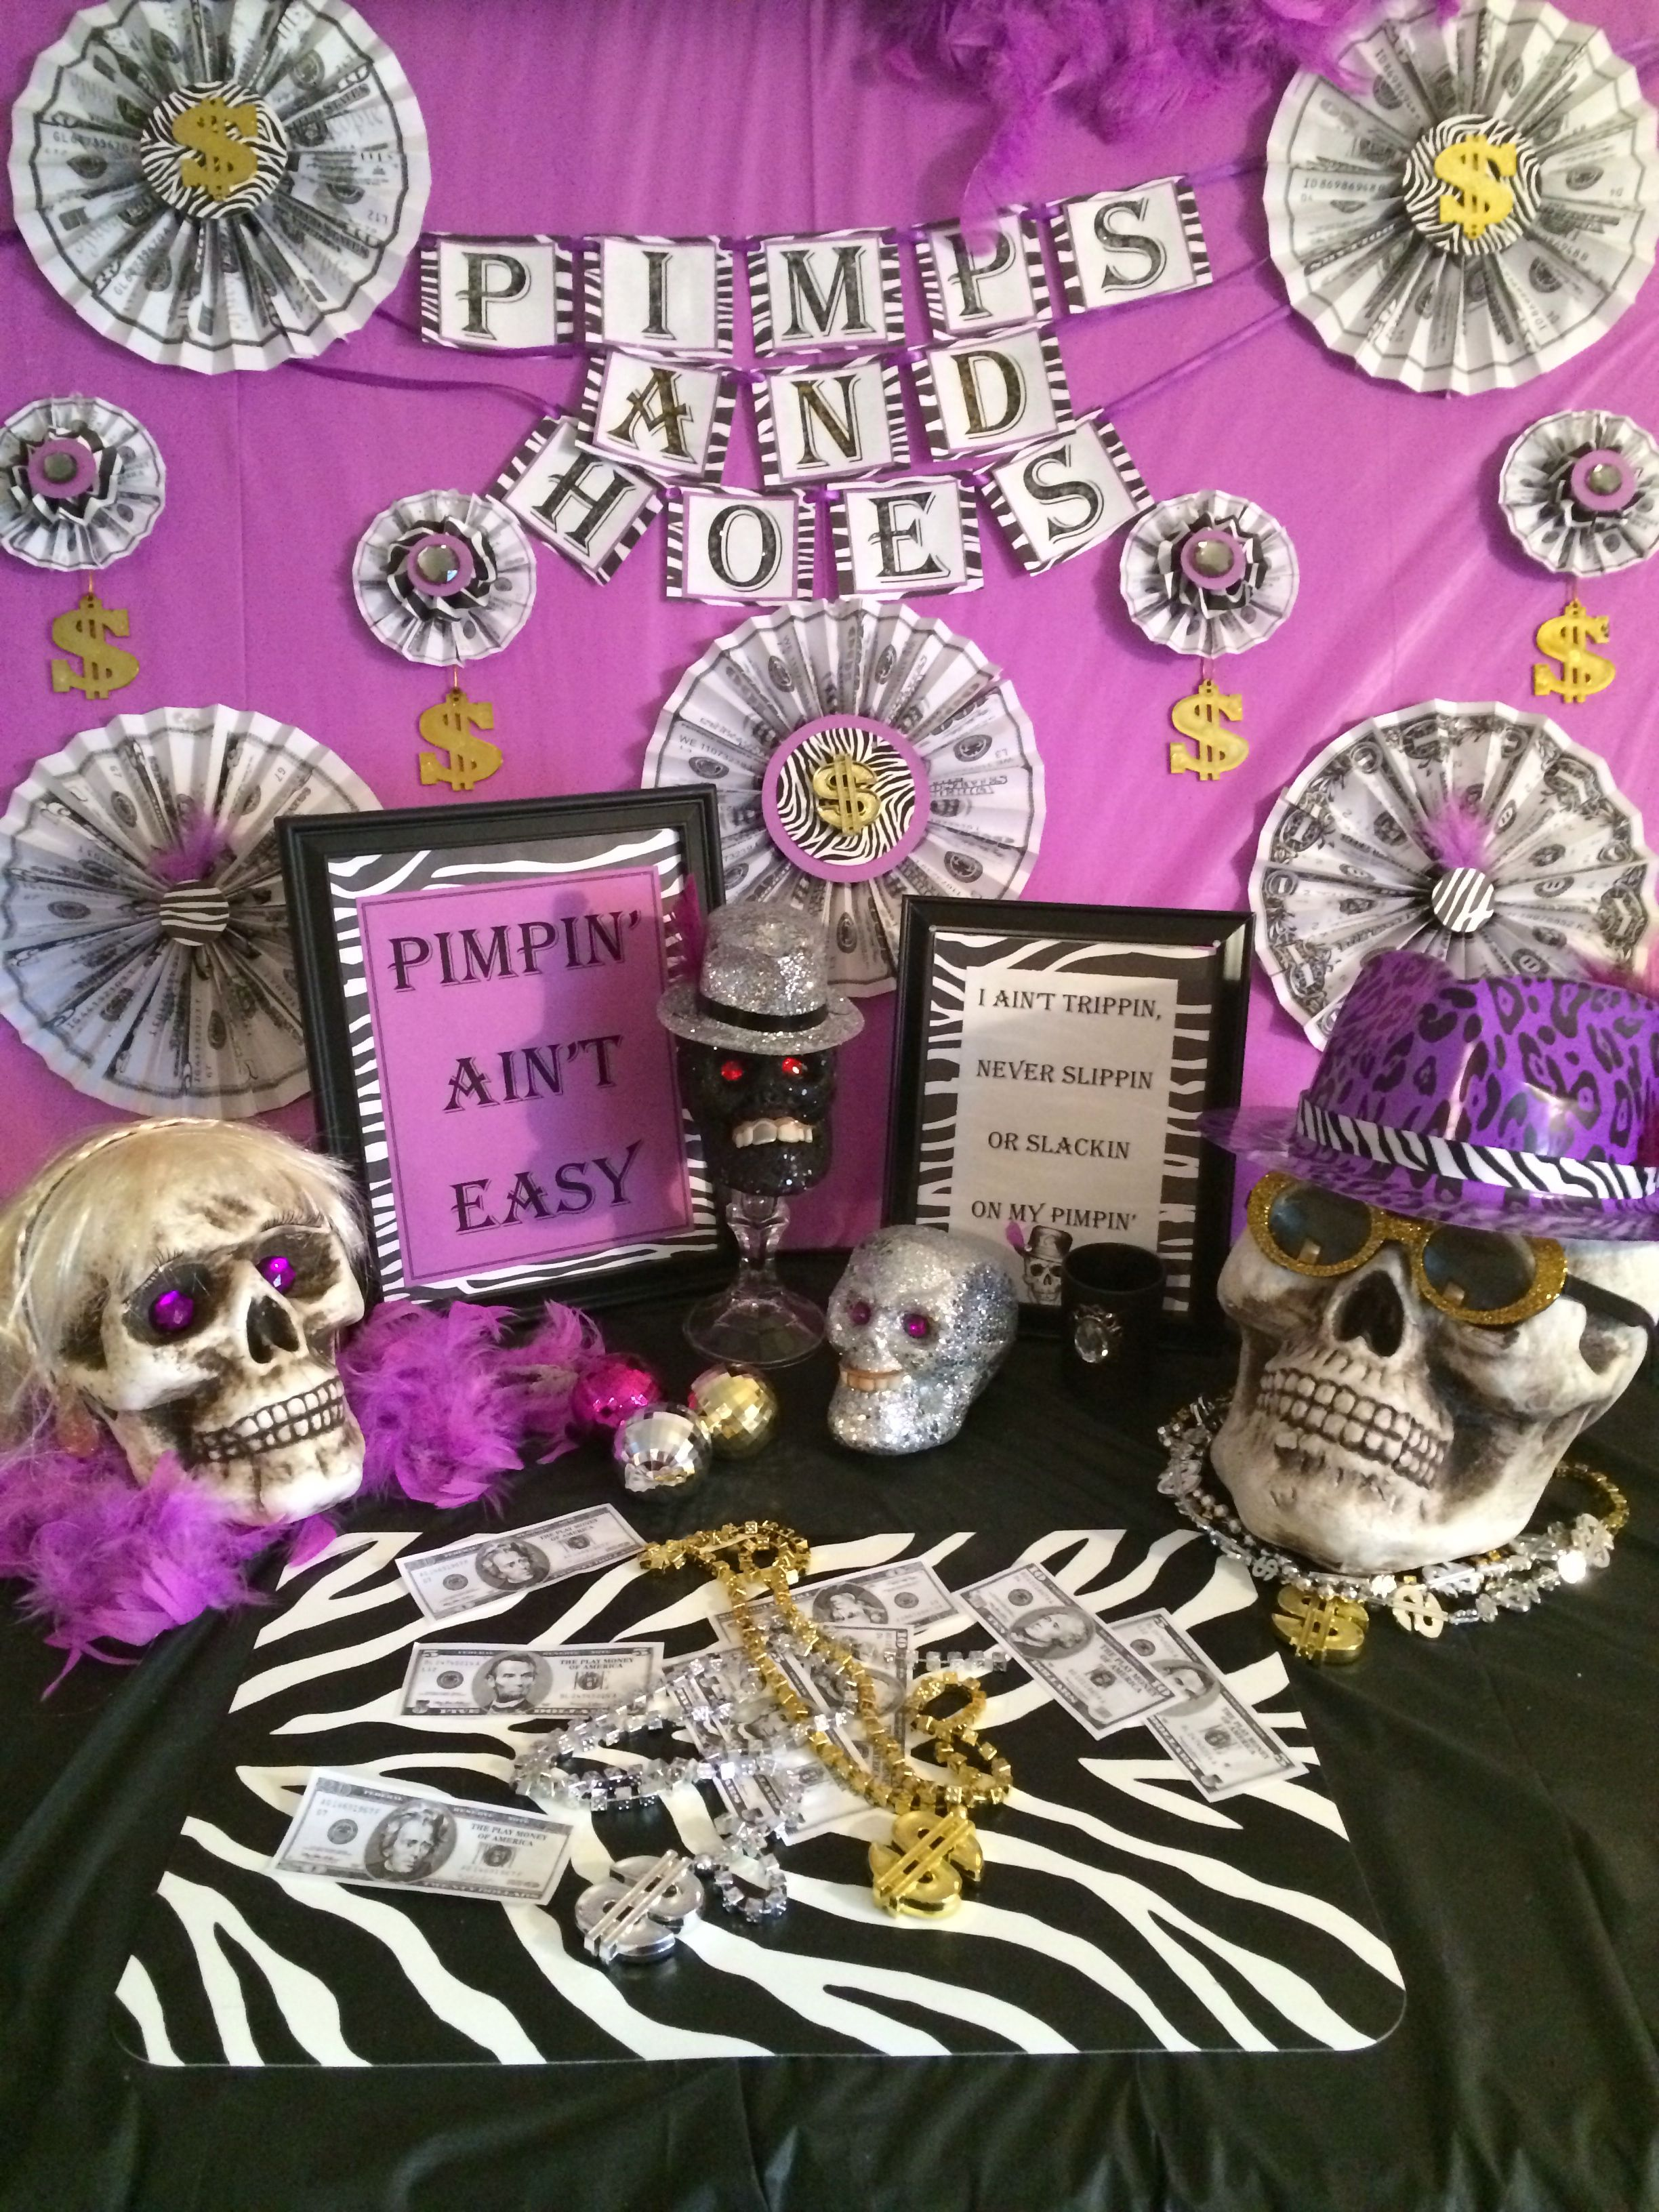 101 Theme Party Ideas—Because It Ain't a Party Without aTheme 101 Theme Party Ideas—Because It Ain't a Party Without aTheme new pics